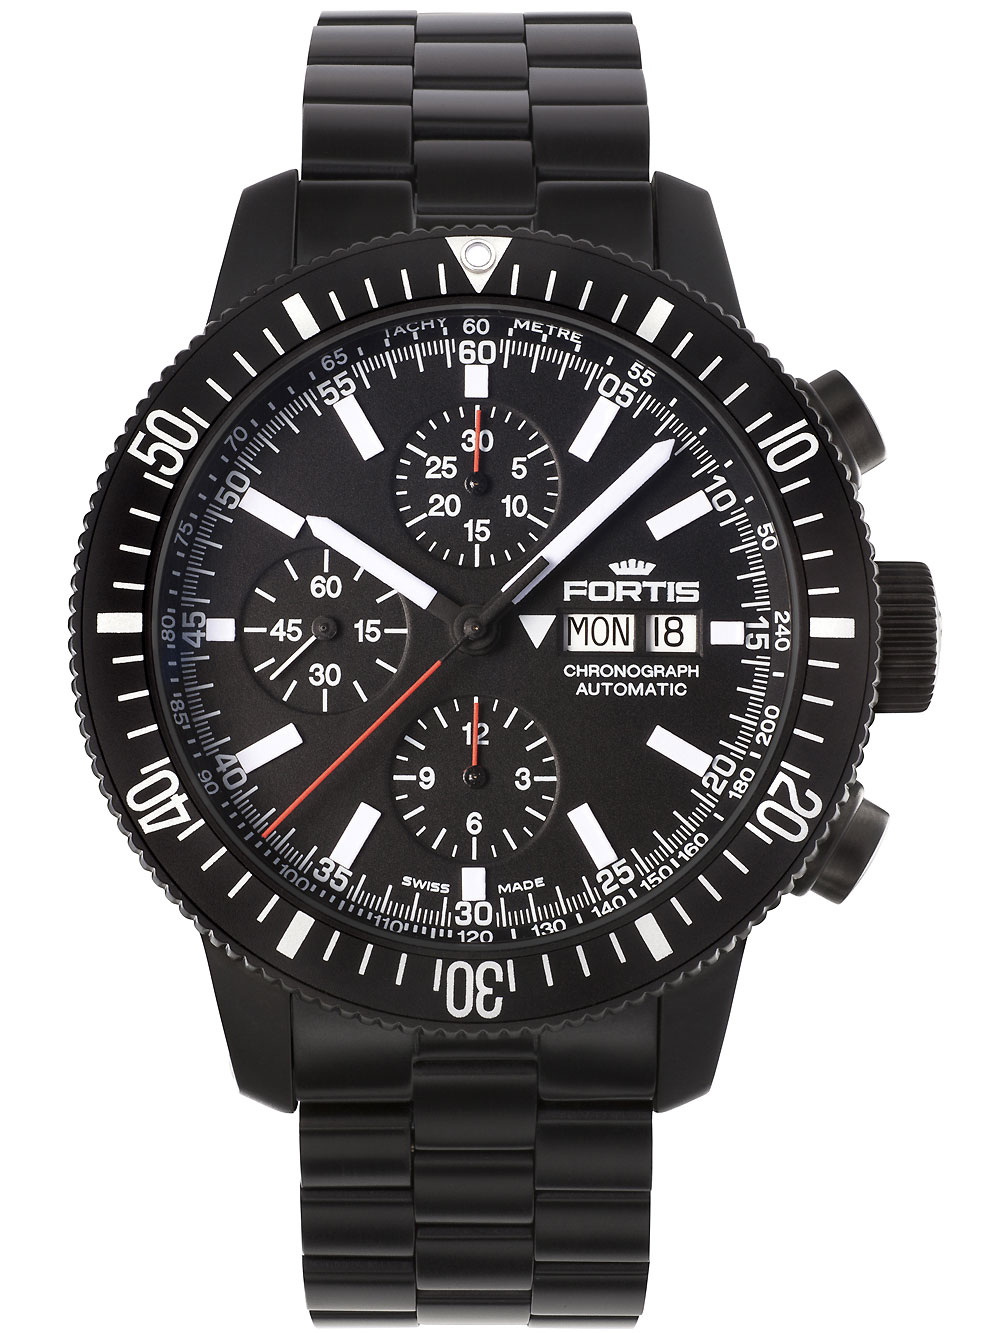 Image of Fortis 638.18.31 M Cosmonauts Chronograph 45mm 20ATM